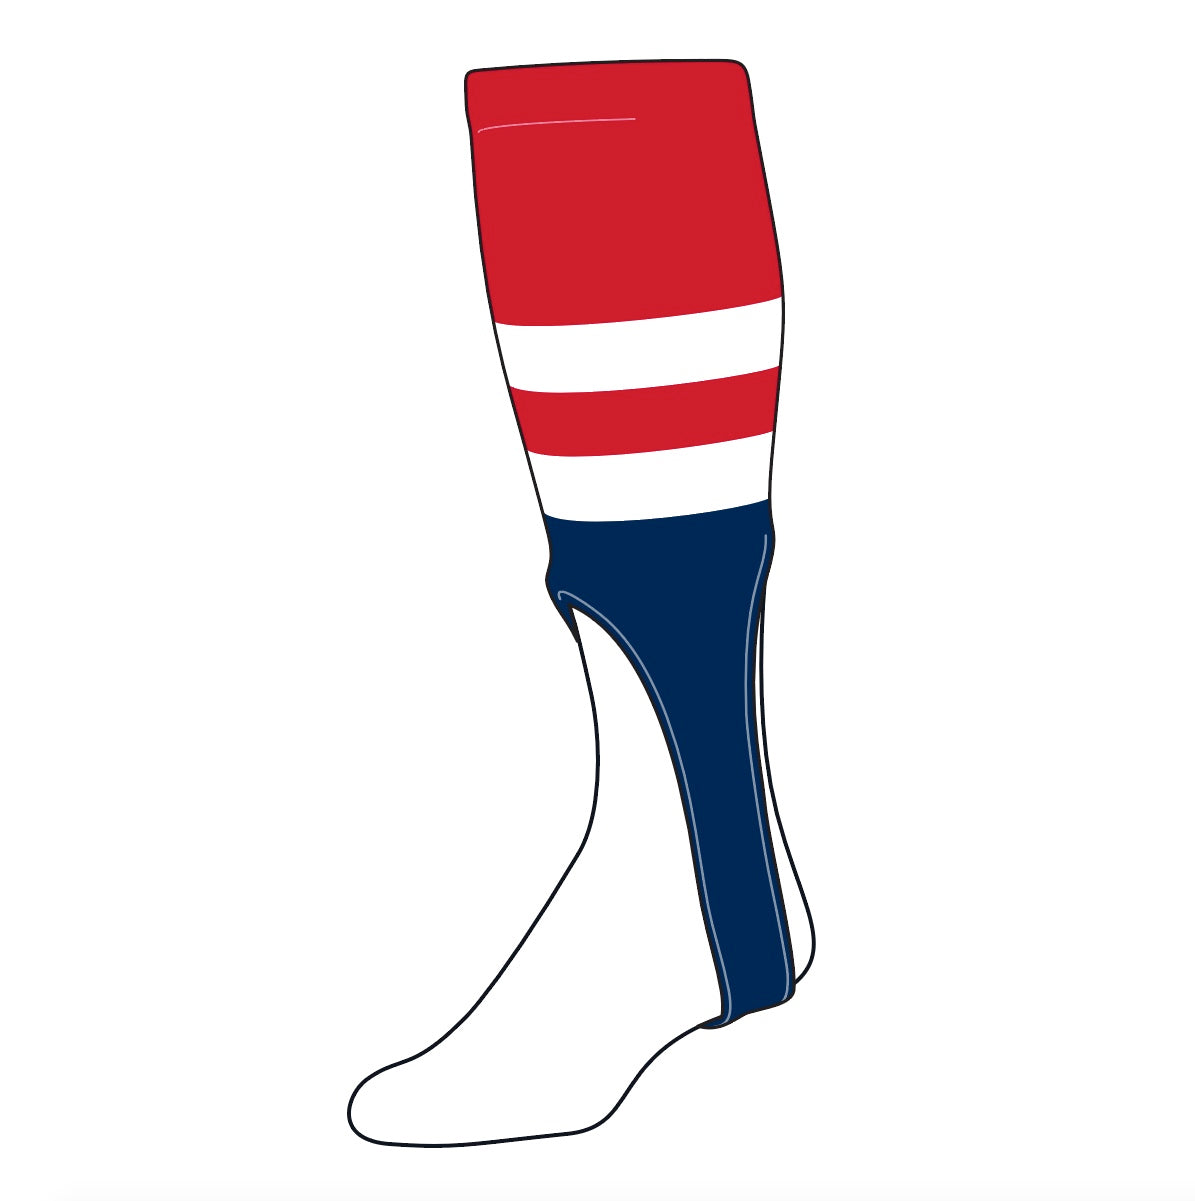 TCK Baseball Stirrups Medium (200G, 9in) Red, White, Navy